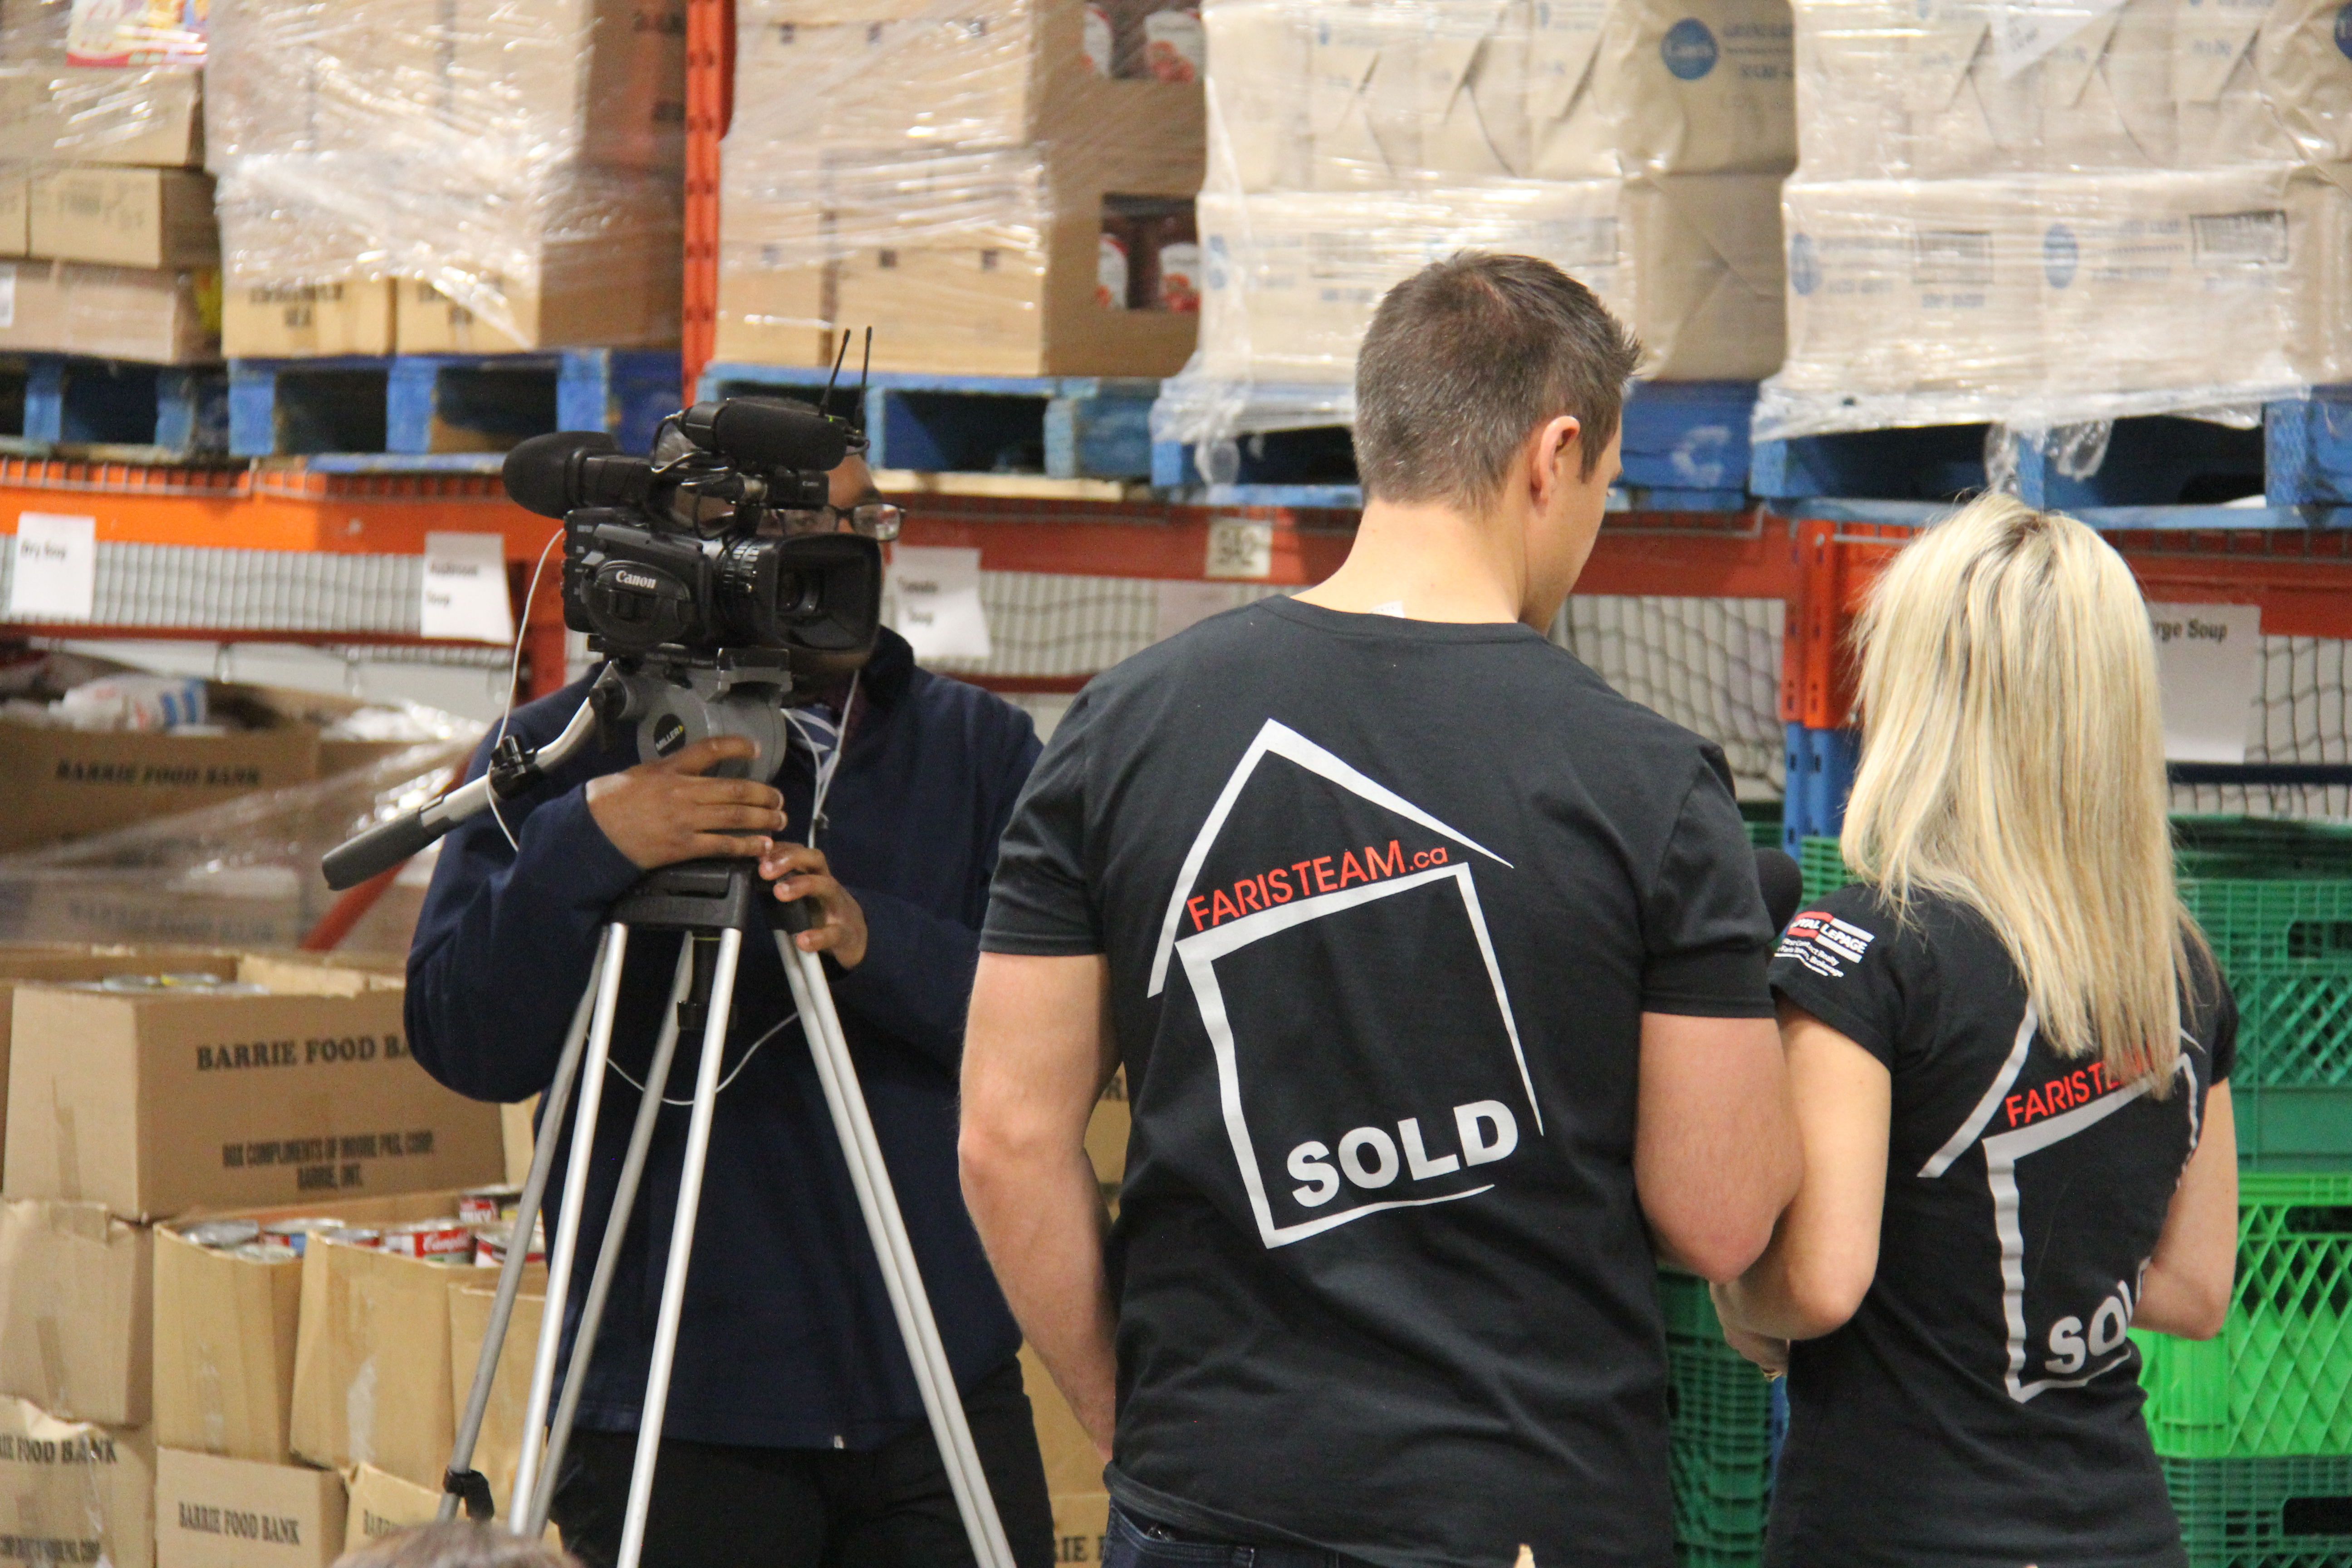 Mark and Joanna Faris interviewed by CTV Barrie at Food Bank April 2017 by PMJ Inc